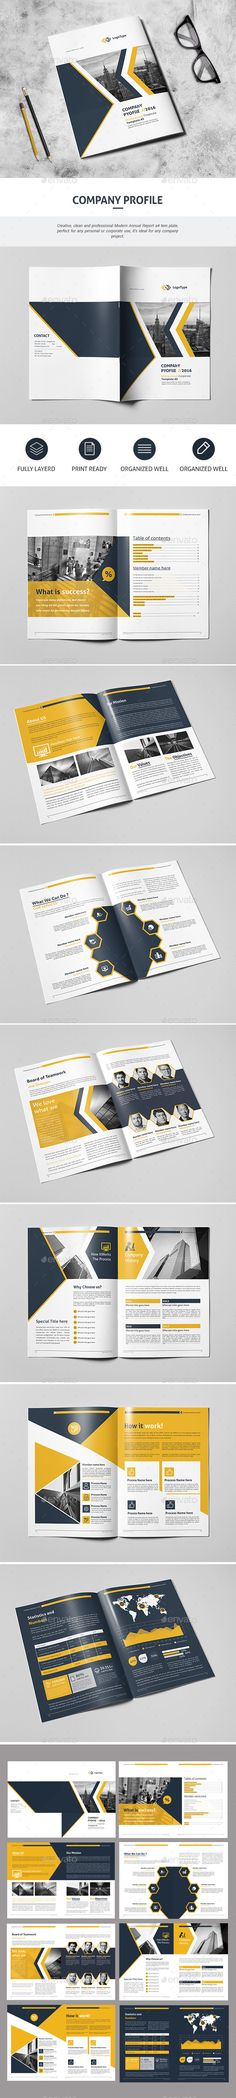 Brochure 01  — PSD Template #report • Download ➝ https://graphicriver.net/item/brochure-01/18206268?ref=pxcr